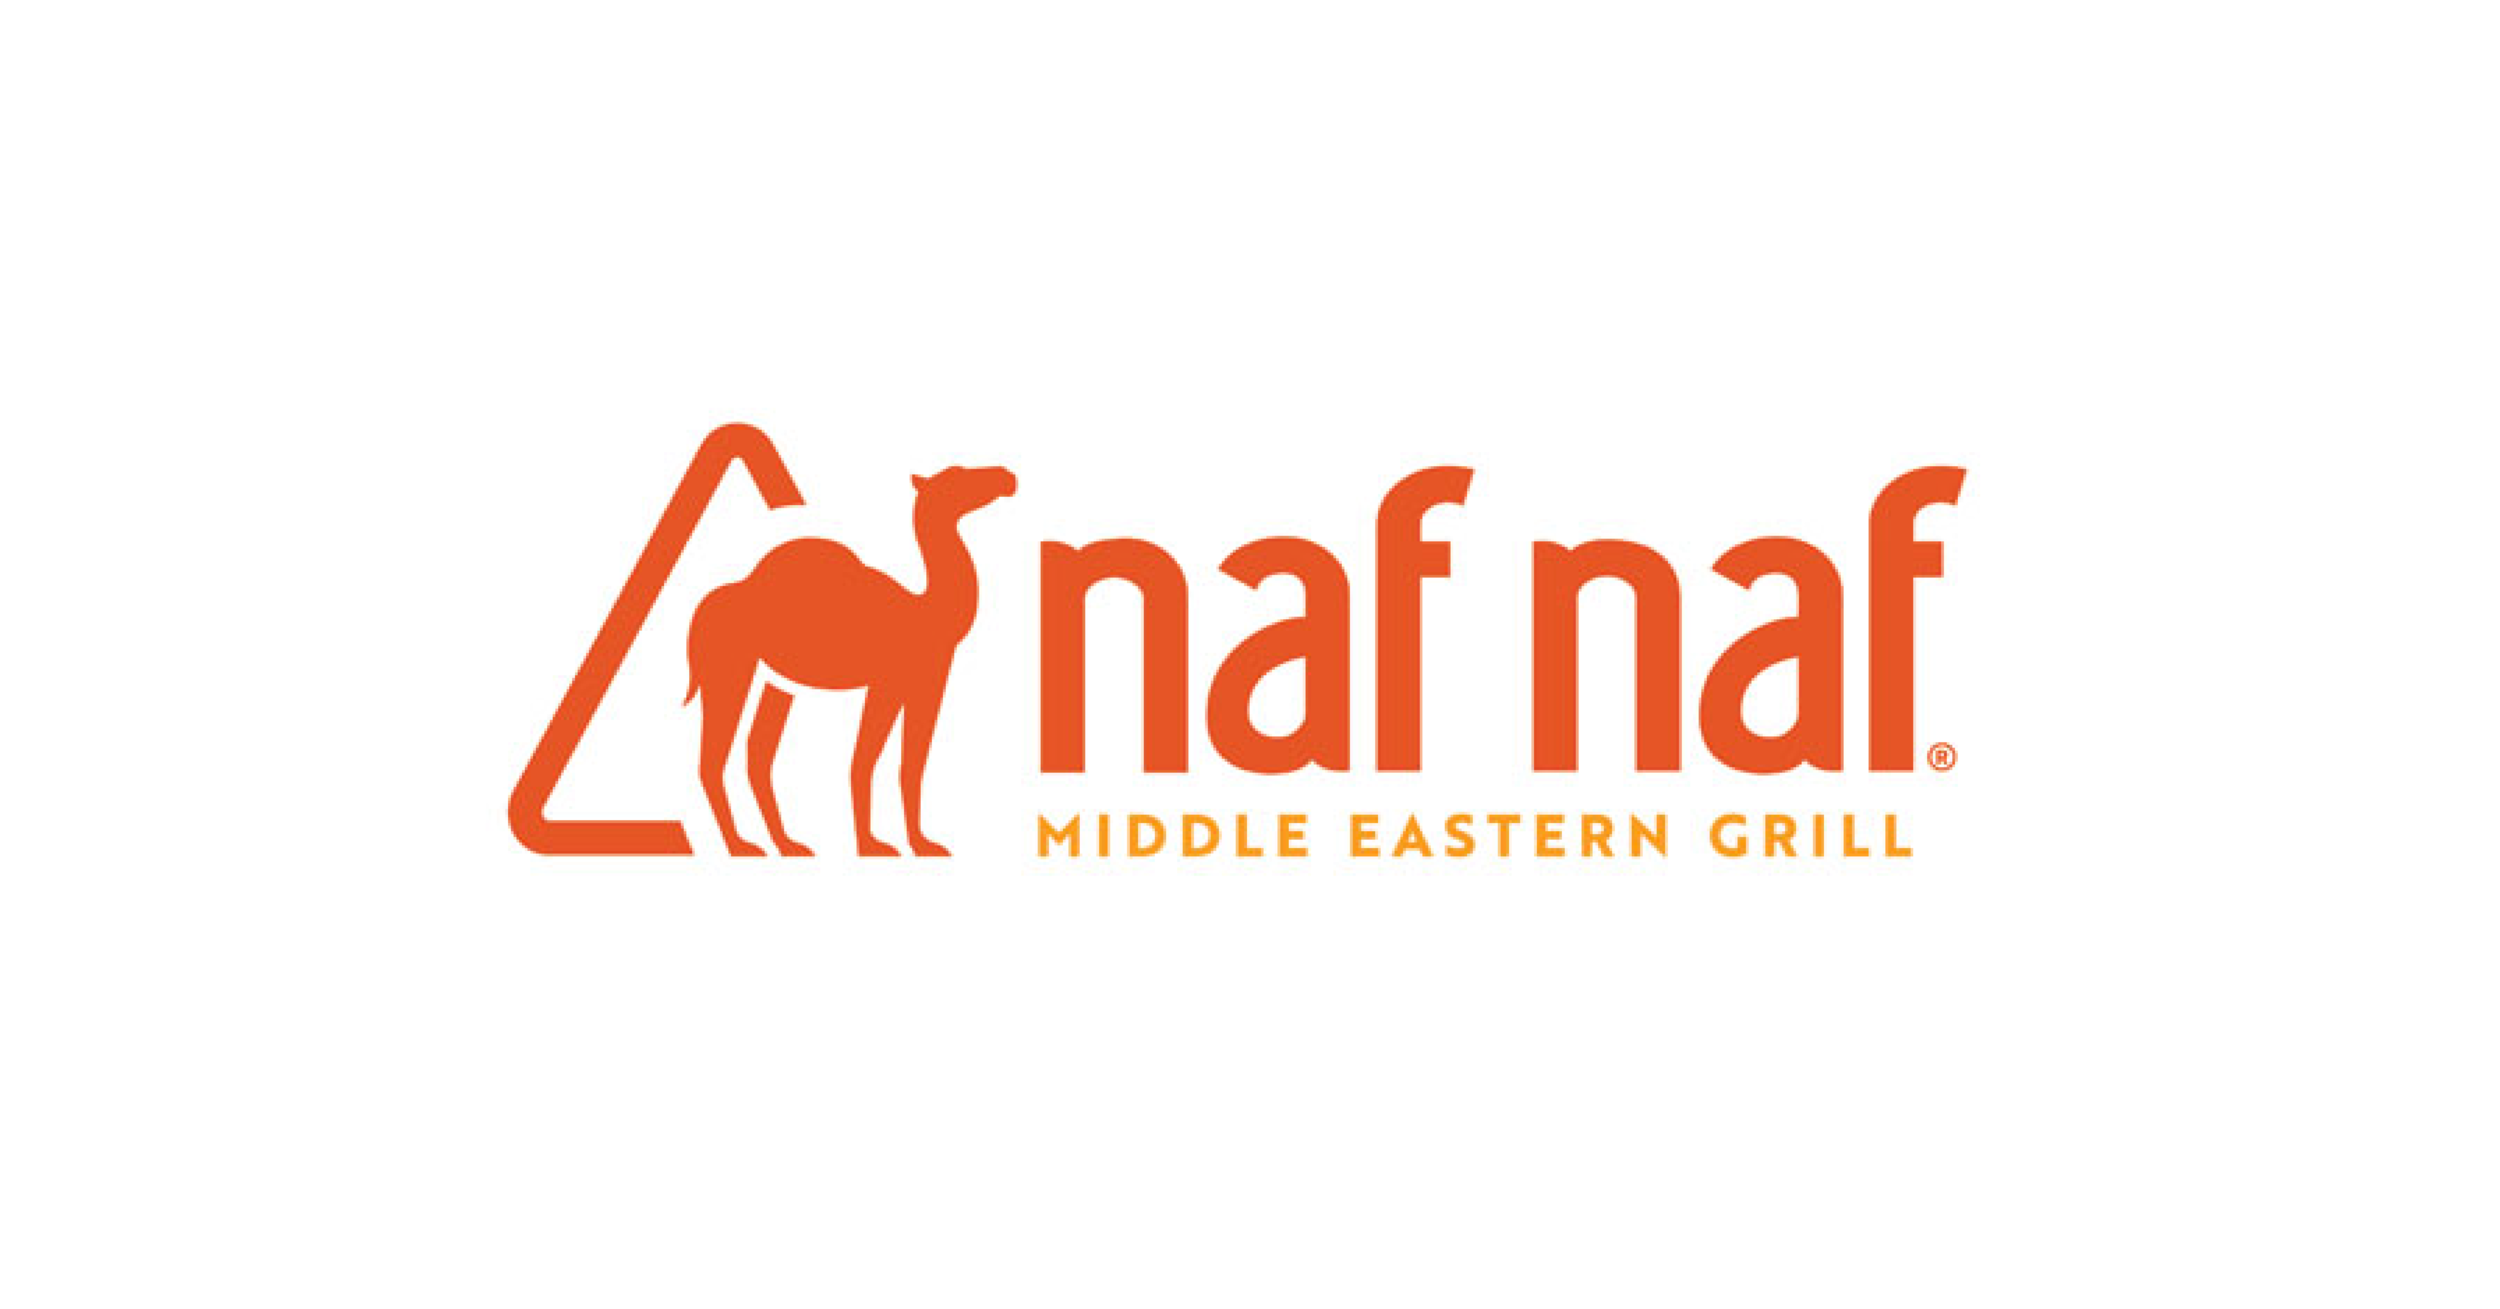 Plant-based tips for eating at Naf Naf Grill. Vegan menu options for Naf Naf Grill explained.